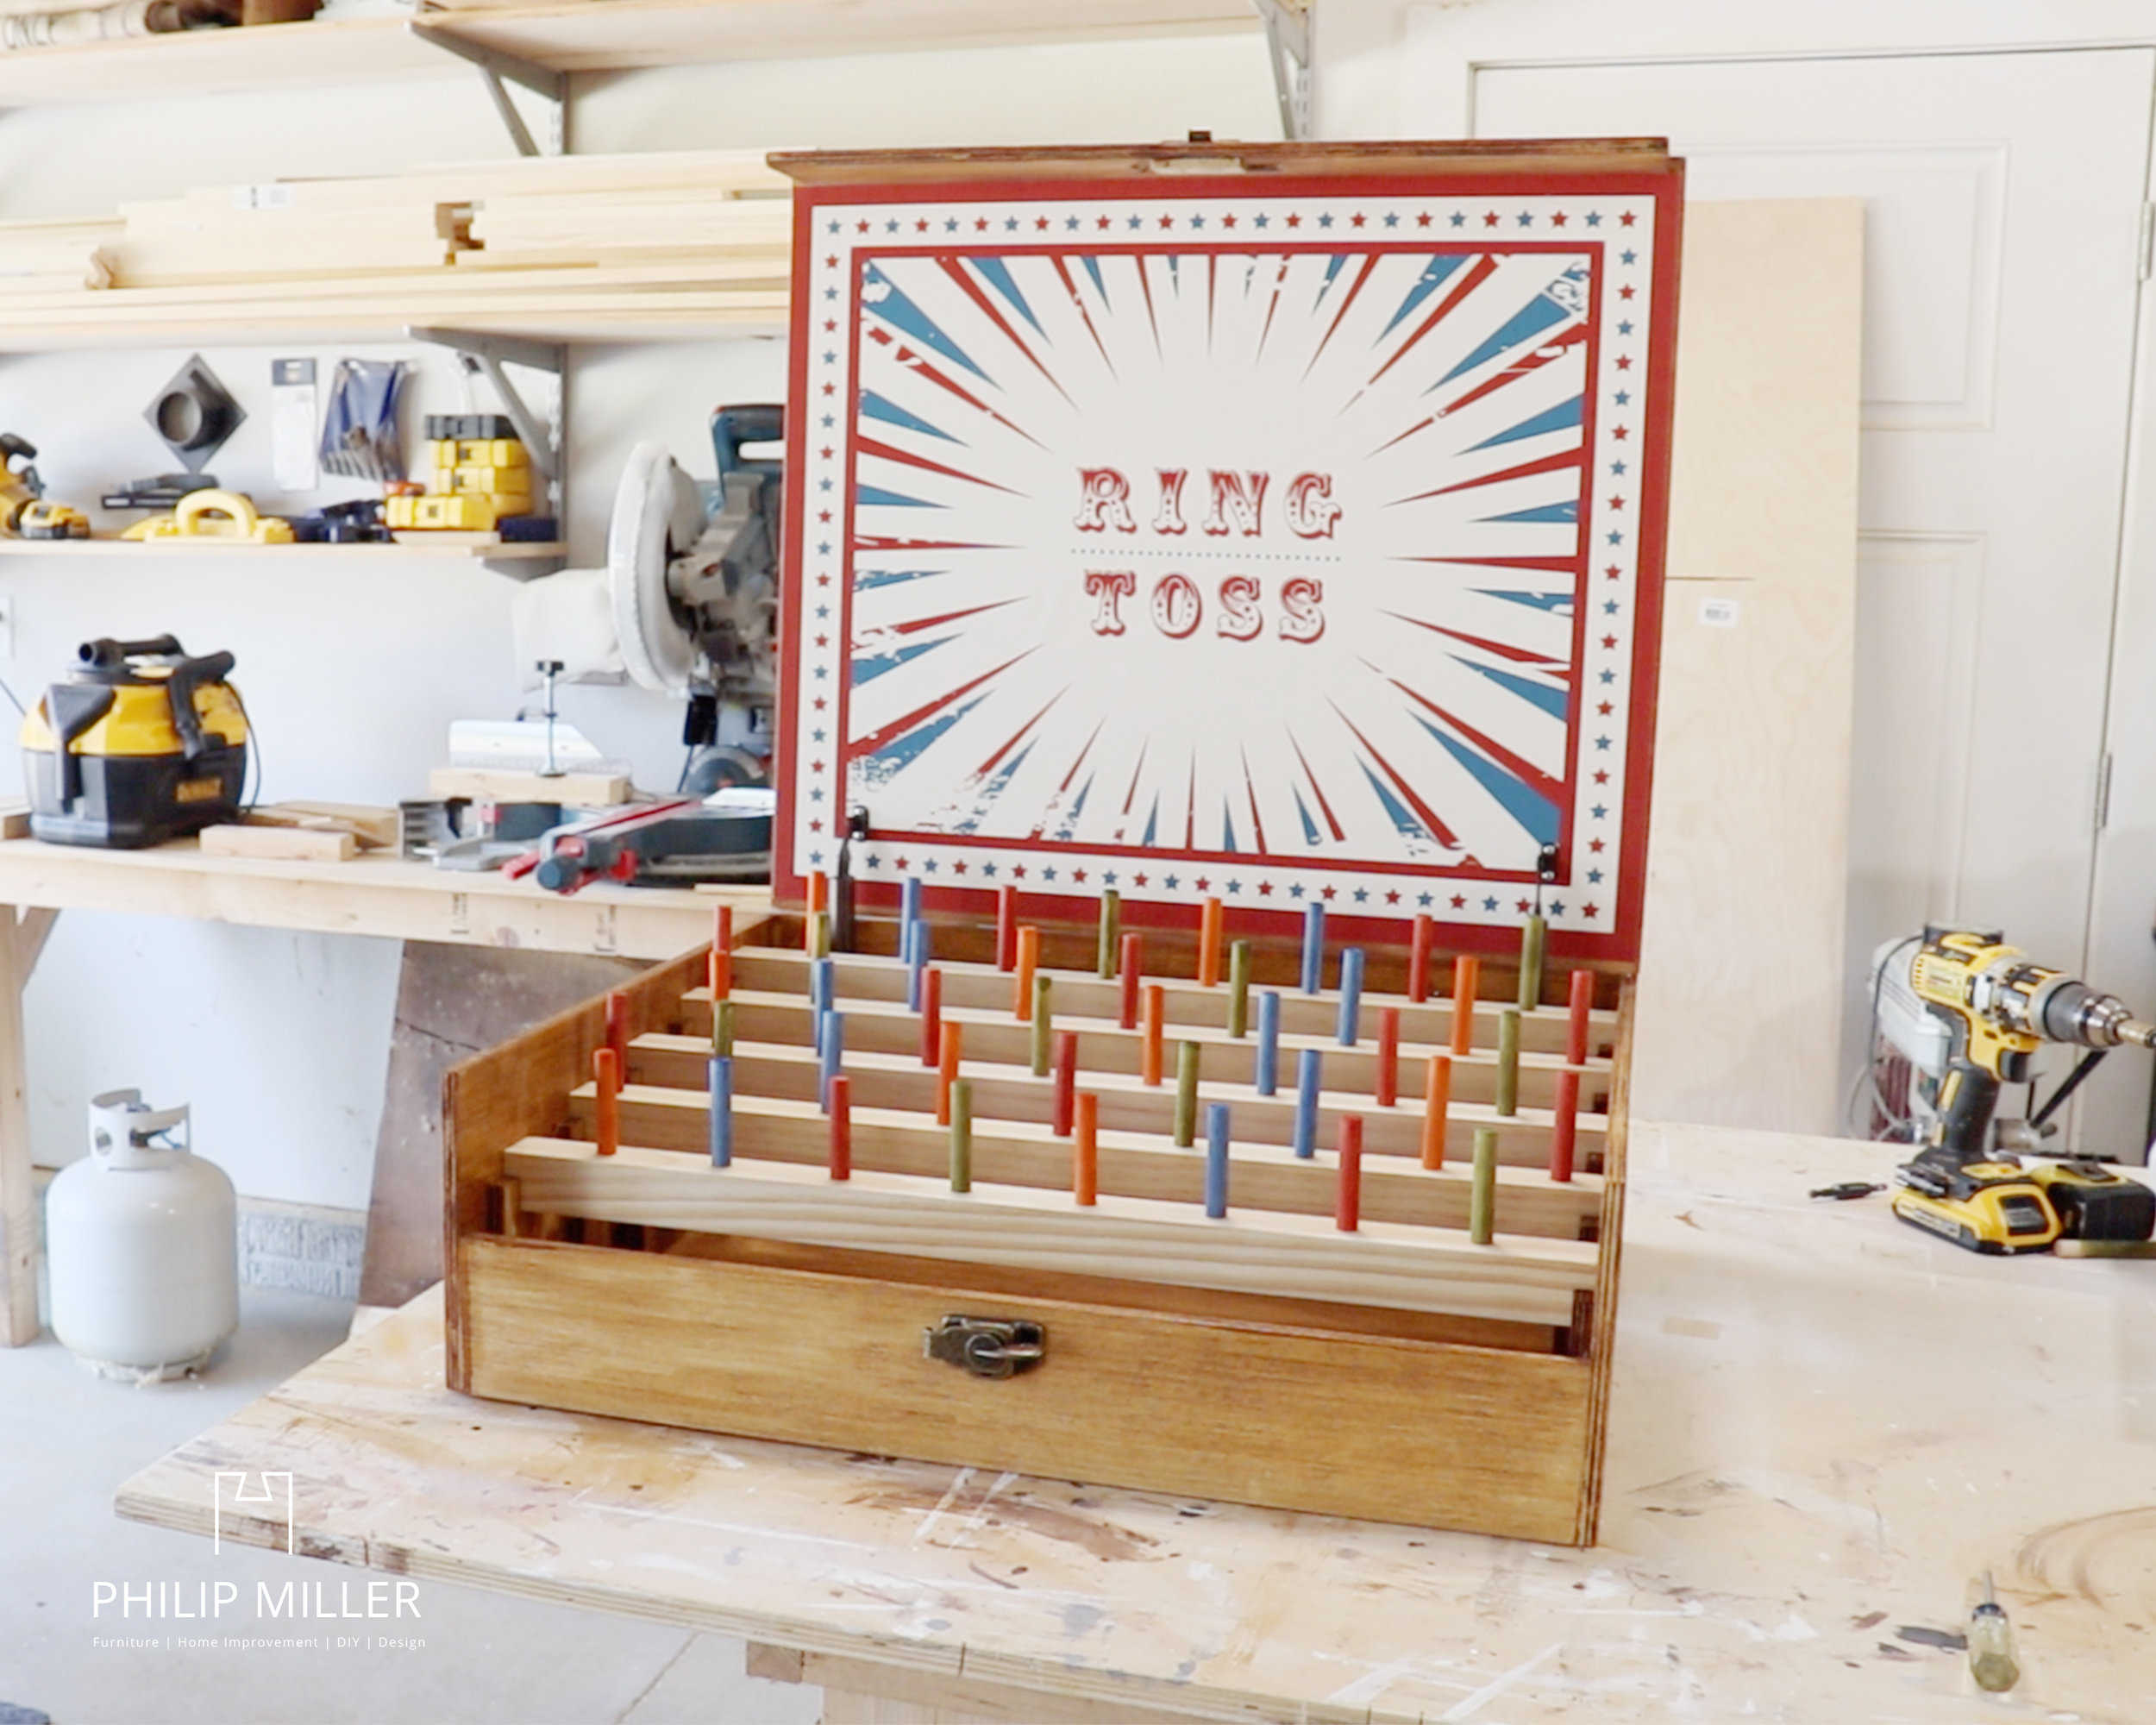 vintage carnival ring toss game on my work bench